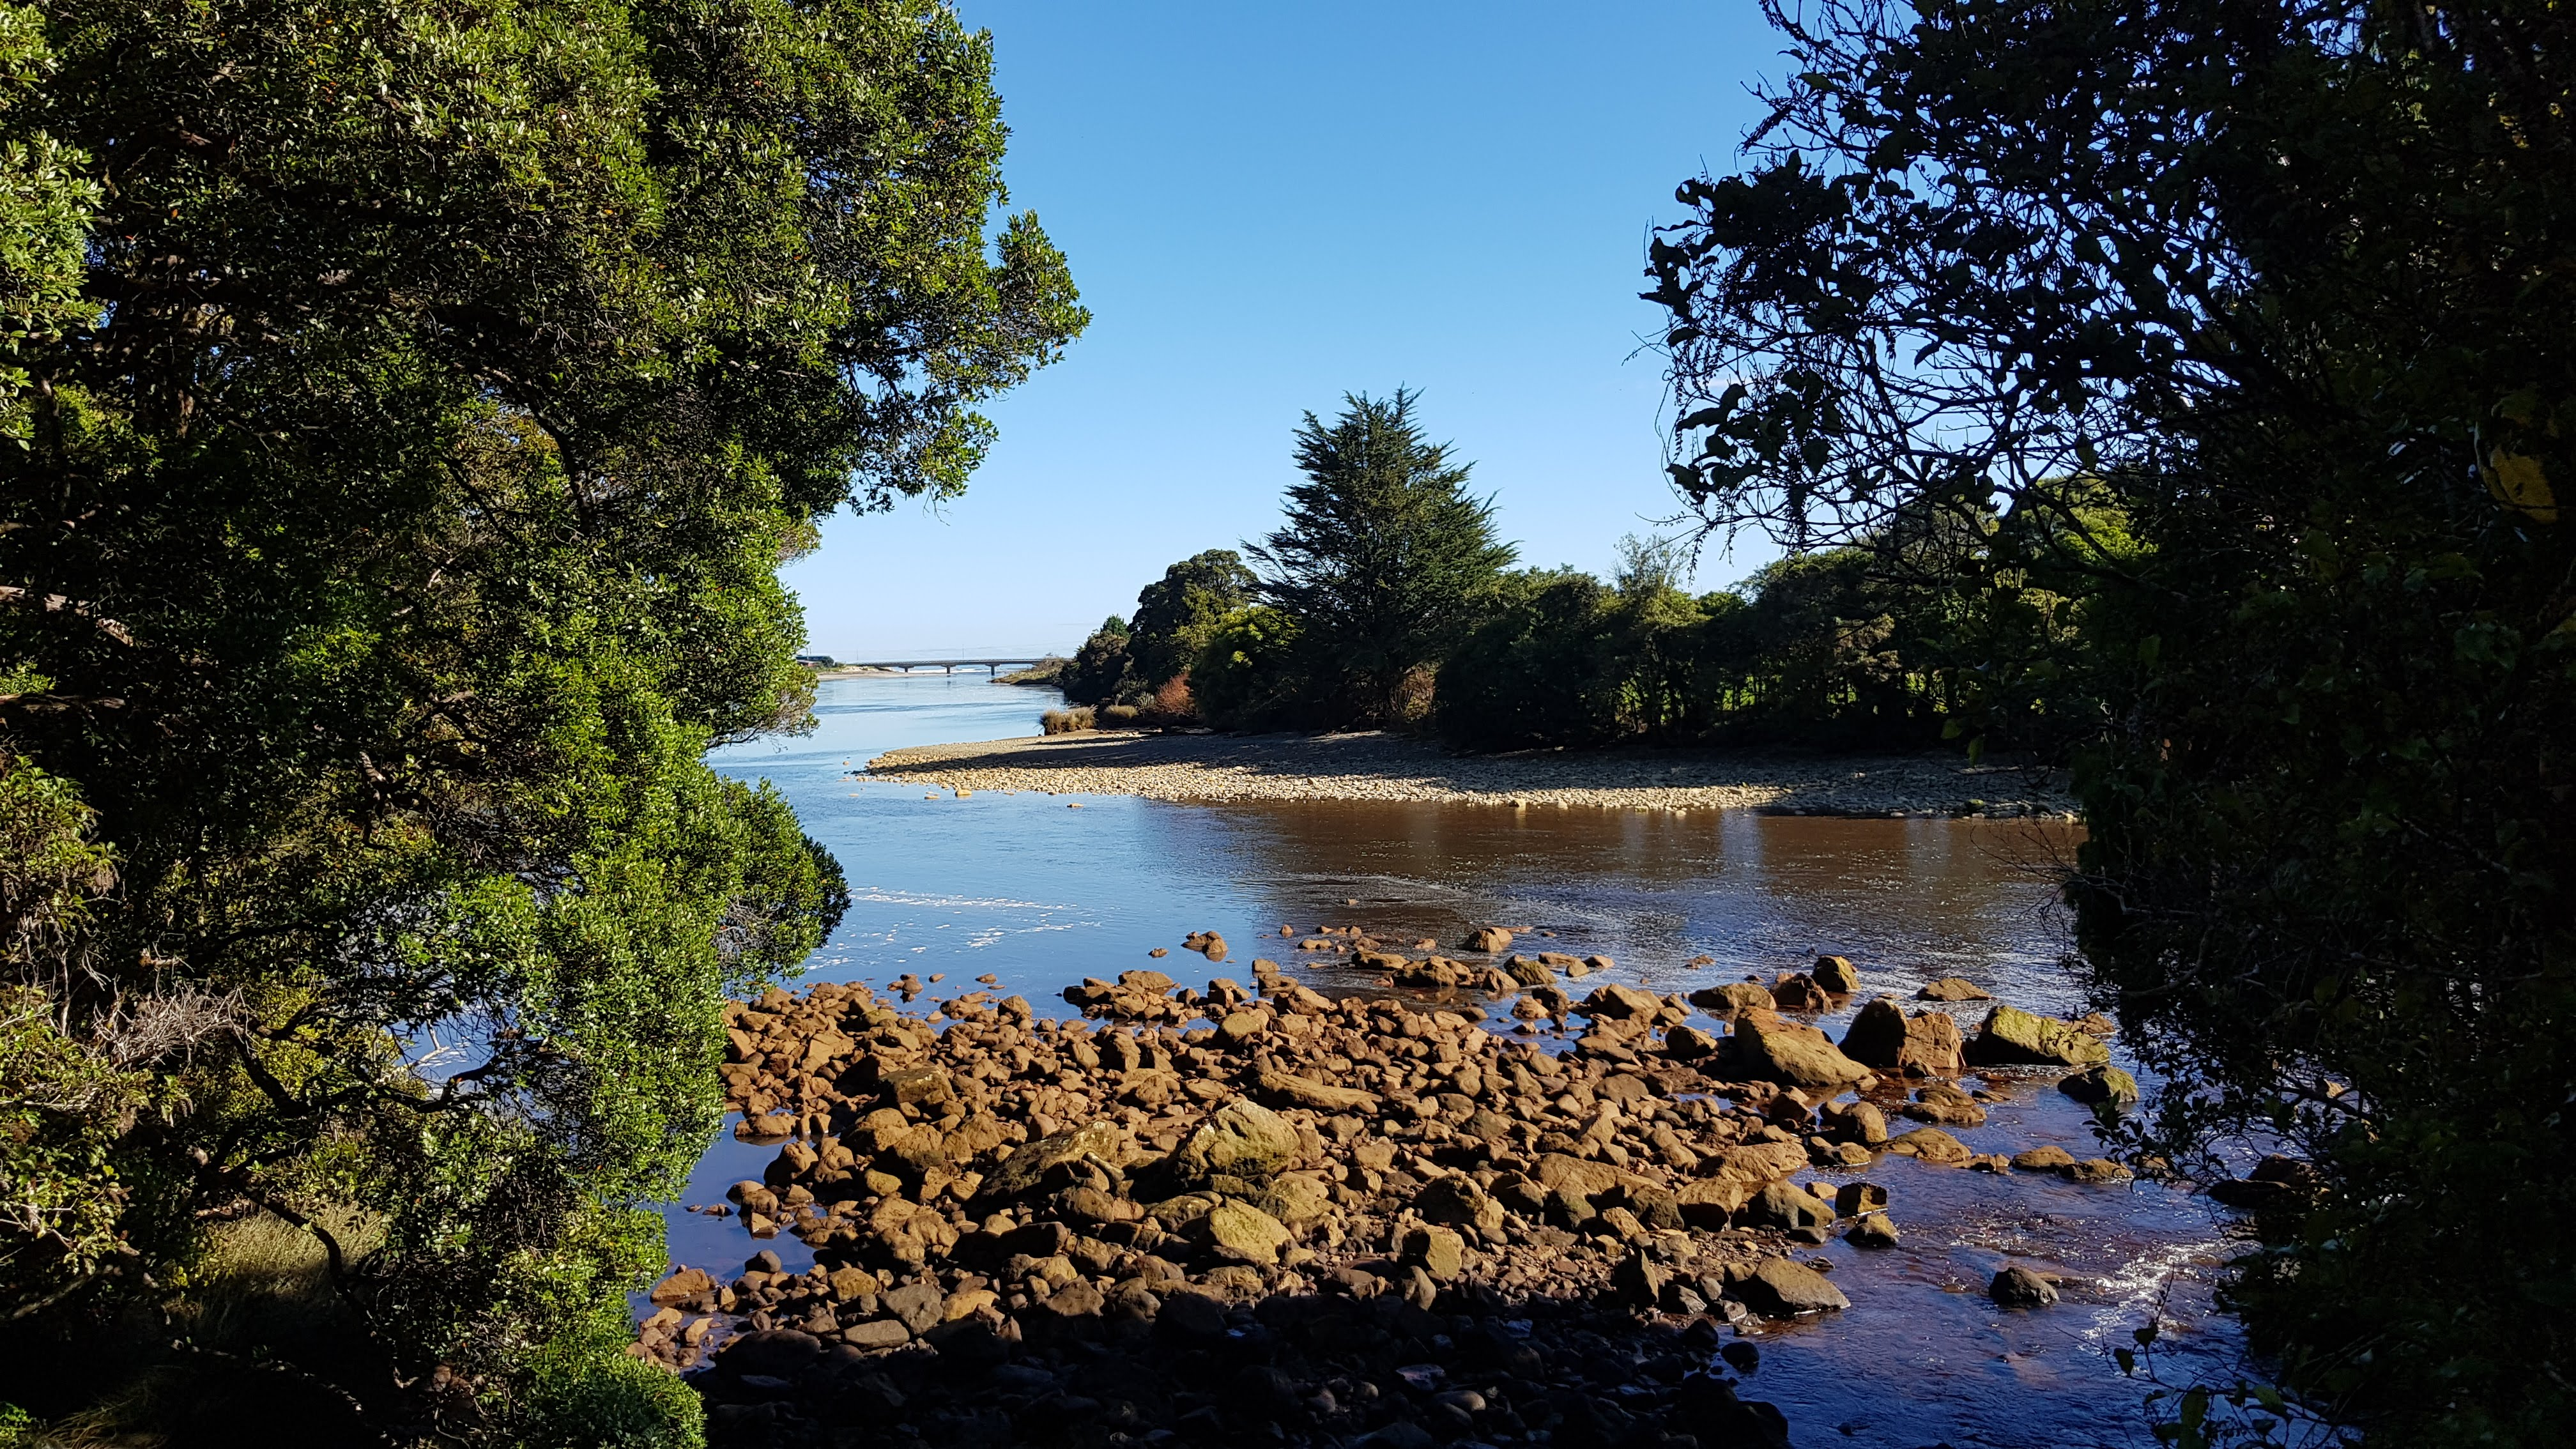 Great view of the Ngakawau River mouth from the Charming Creek Walkway